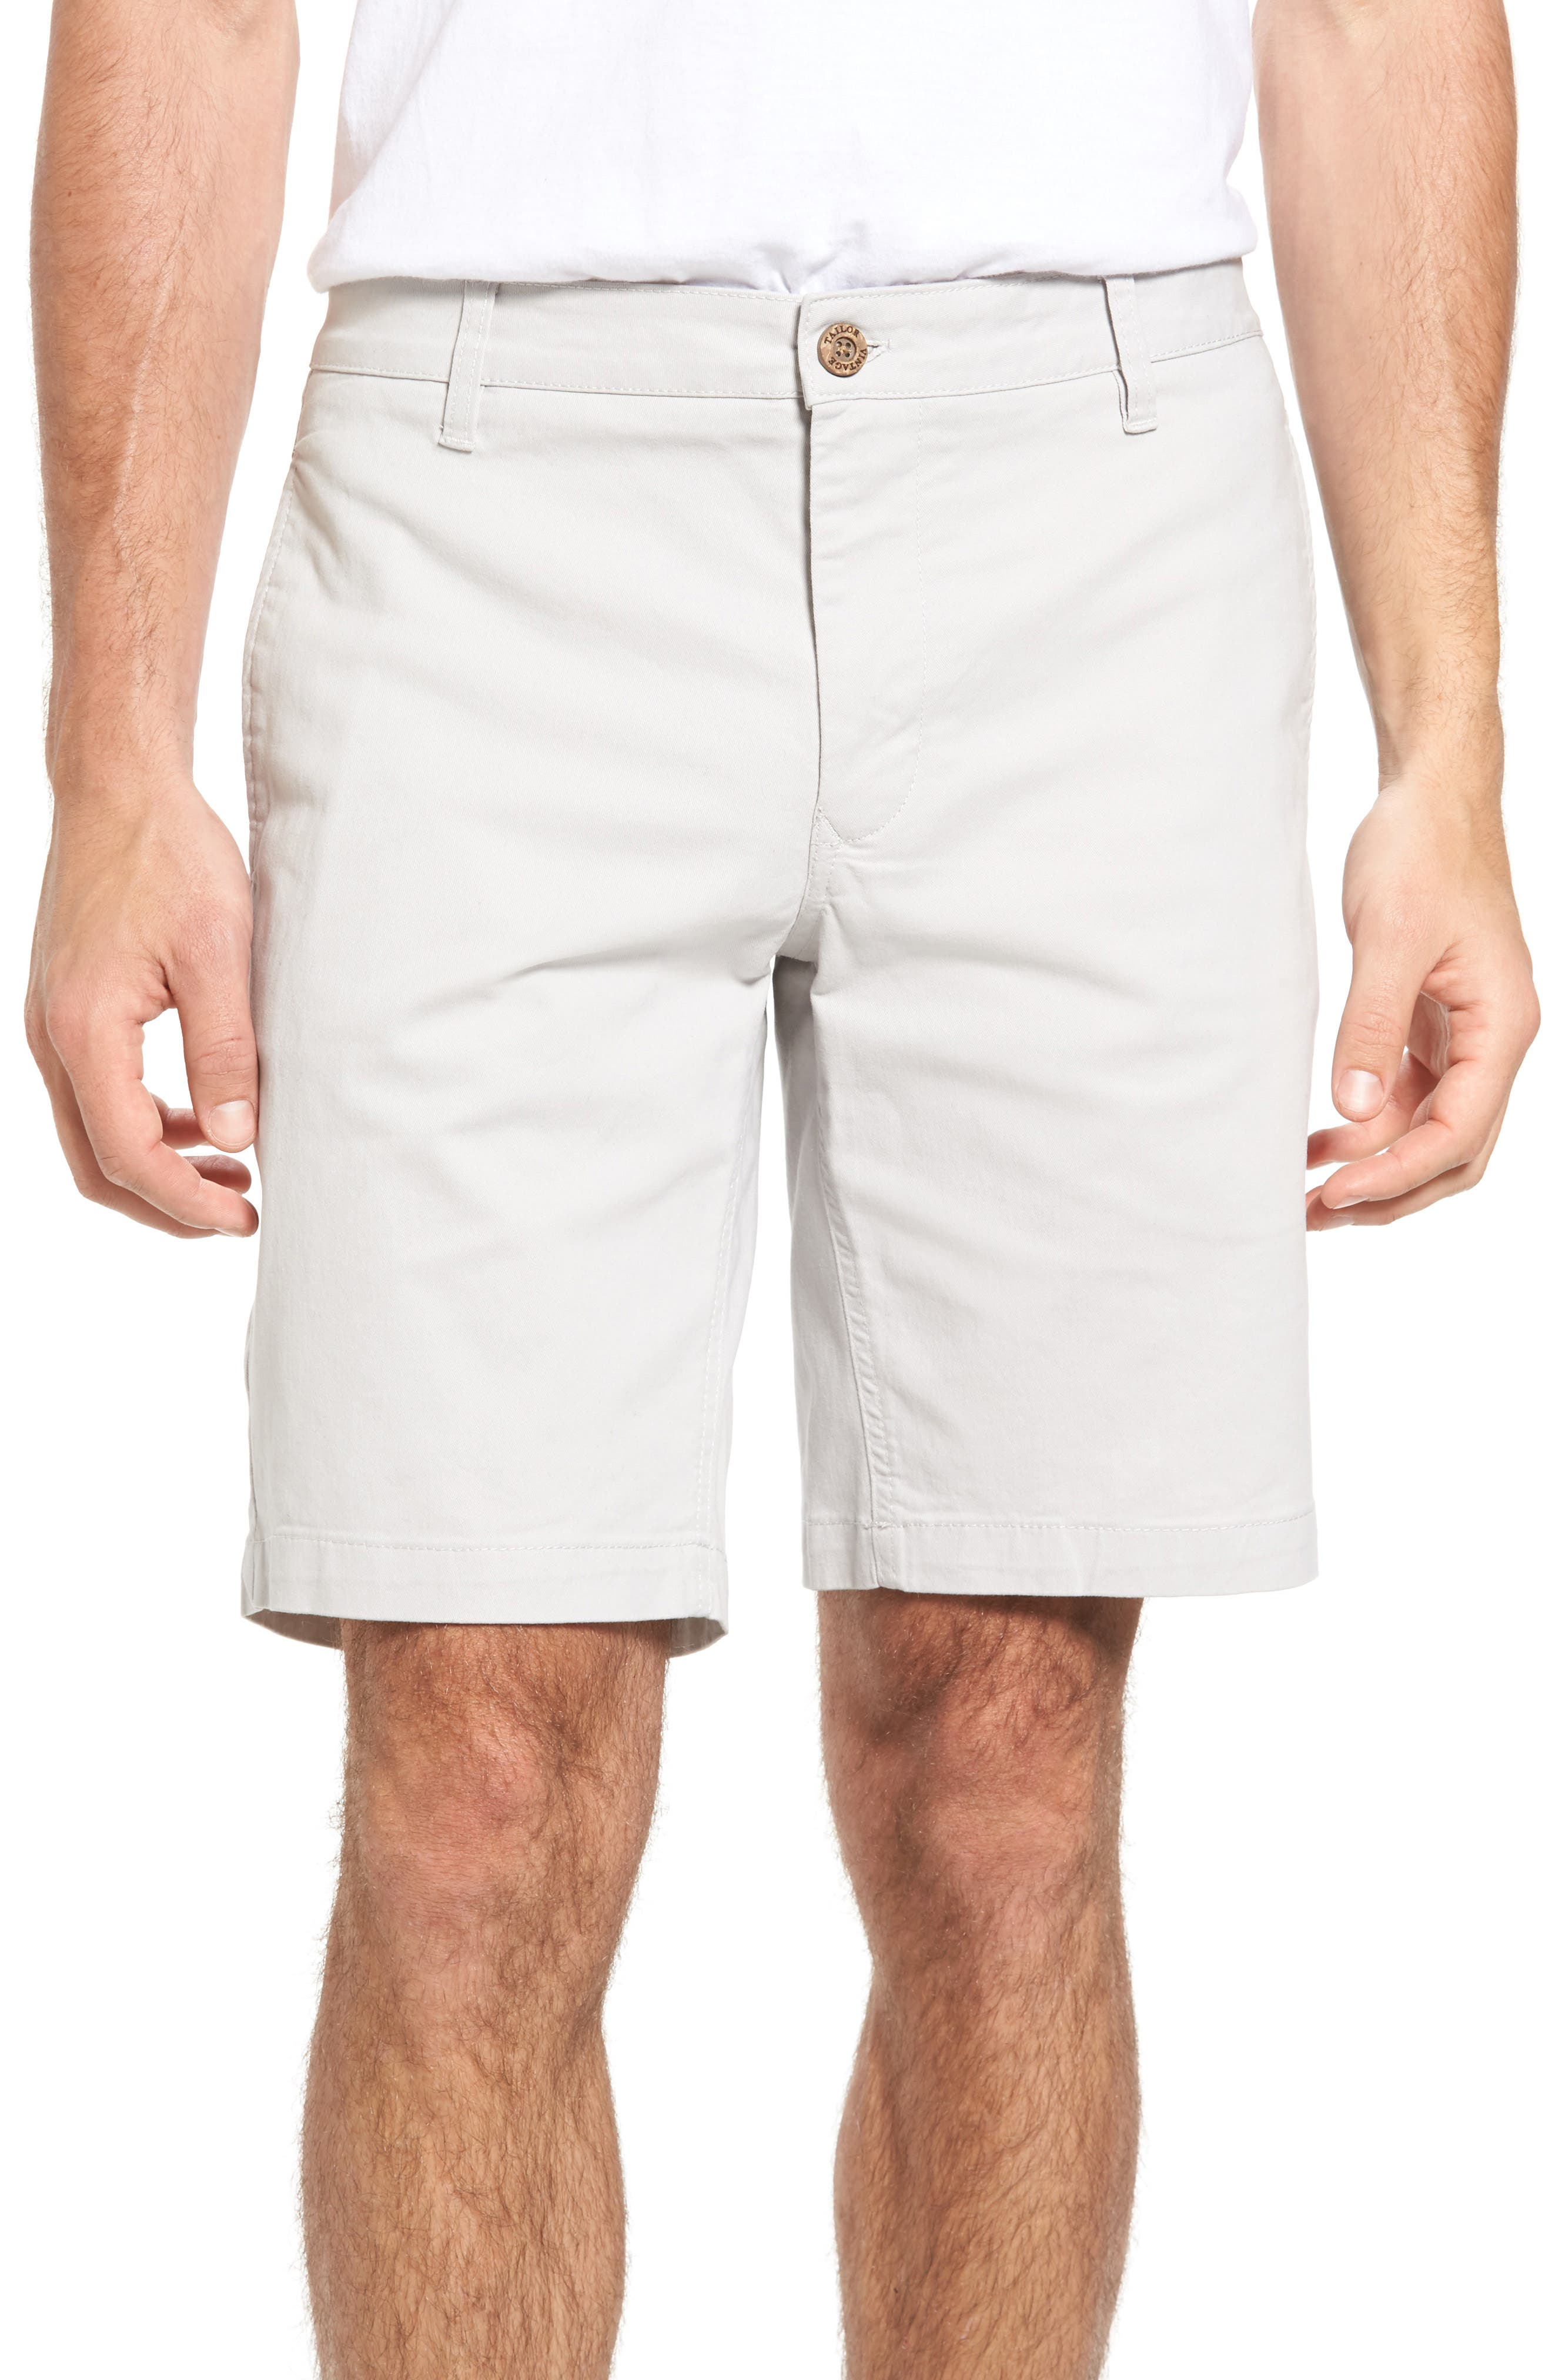 Stretch Twill Walking Shorts,                         Main,                         color, 050